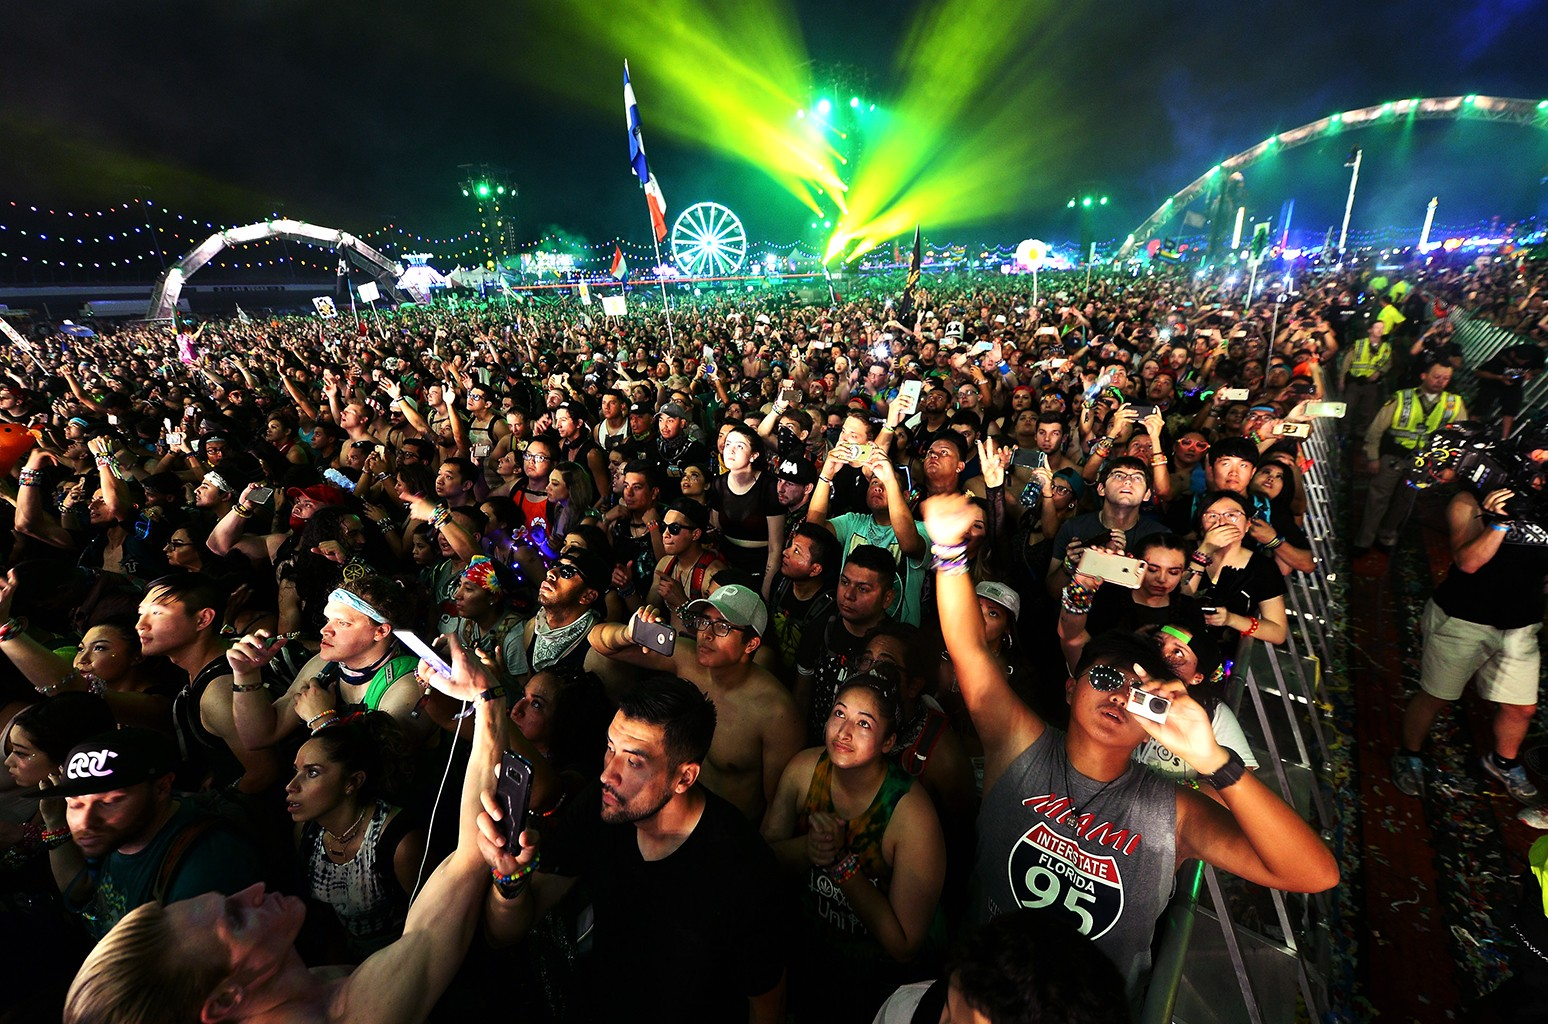 Fans react to Showtek performance during the 21st annual Electric Daisy Carnival at Las Vegas Motor Speedway on June 18, 2017 in Las Vegas.